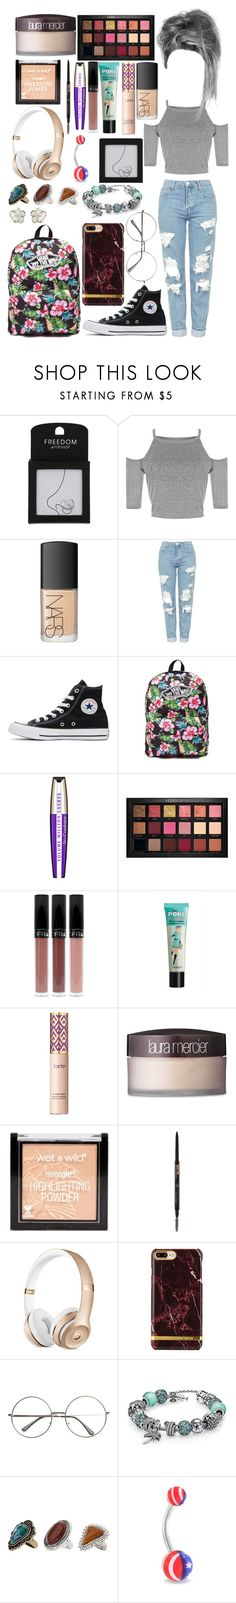 """""""Untitled #953"""" by brunette-biatch ❤ liked on Polyvore featuring Topshop, NARS Cosmetics, Converse, Vans, L'Oréal Paris, Huda Beauty, tarte, Laura Mercier, Anastasia Beverly Hills and Bling Jewelry"""